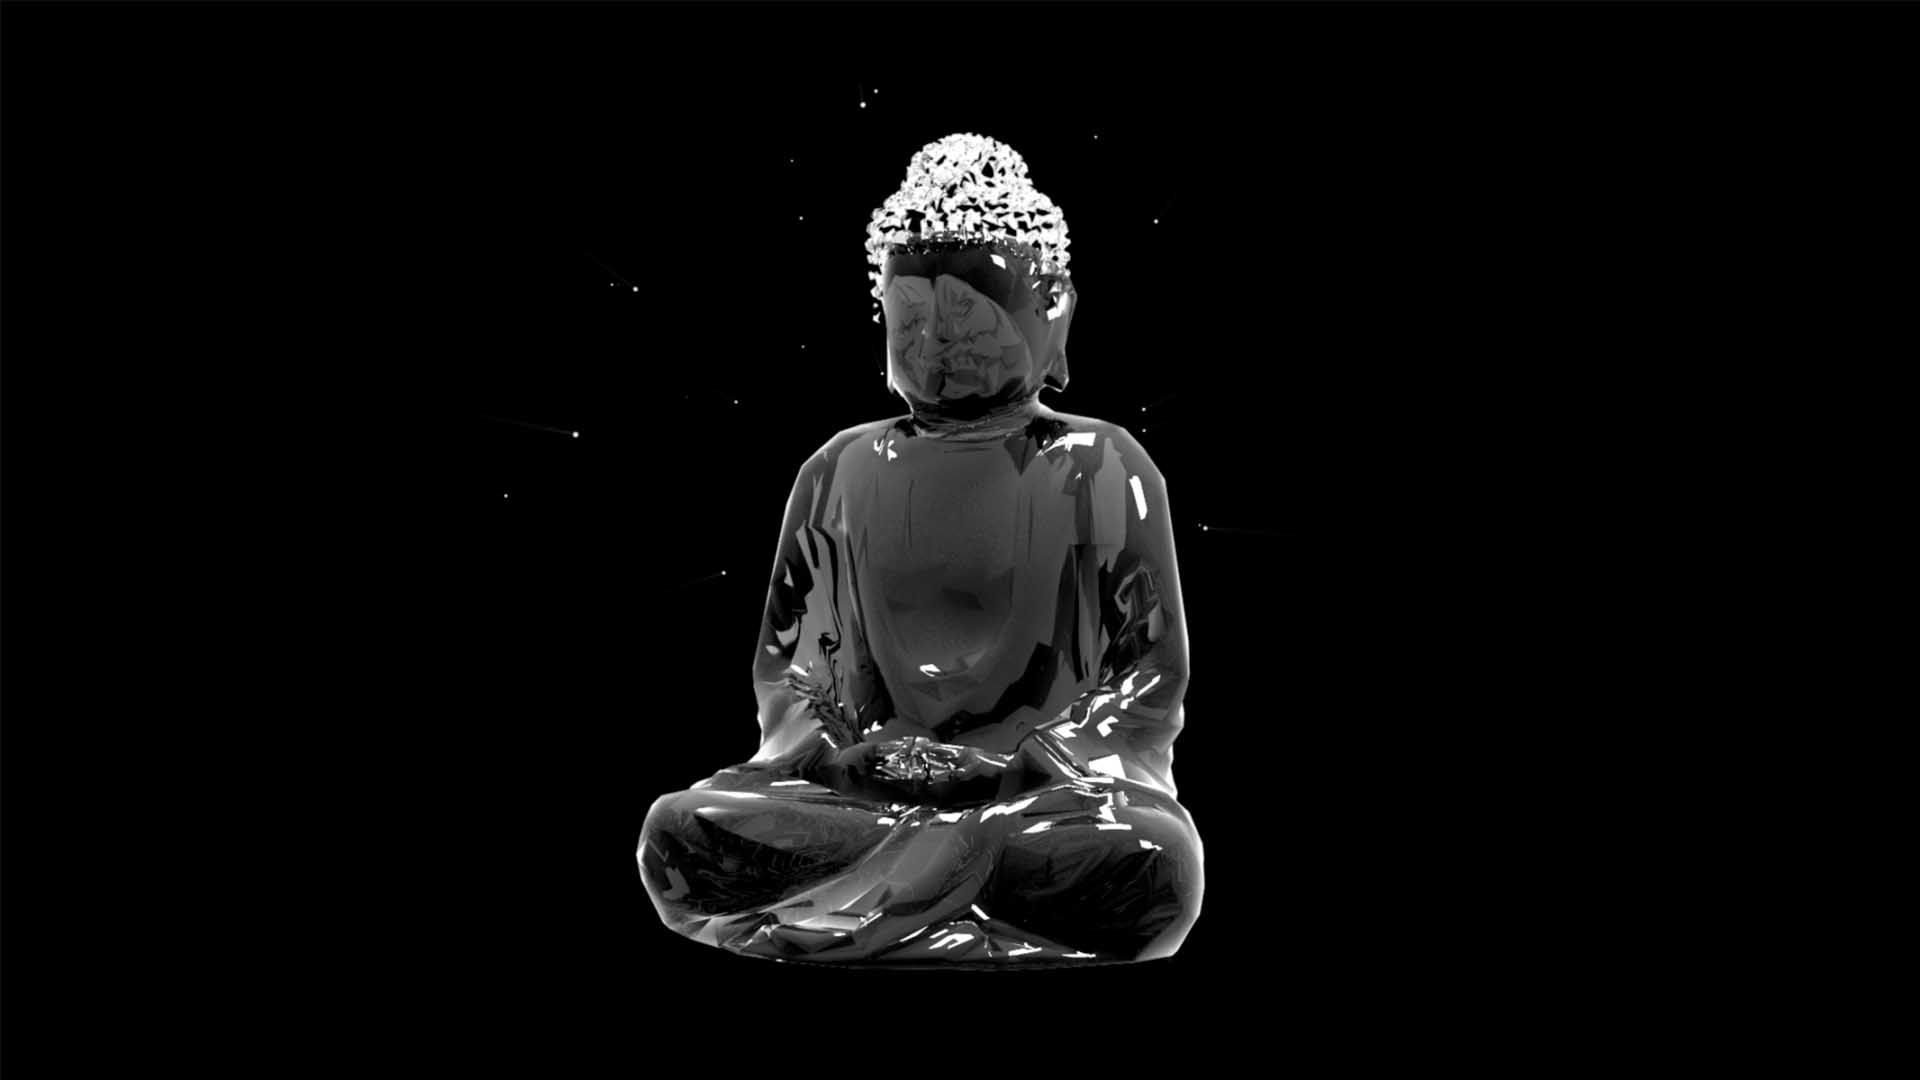 Liquid_Geometry_Statue_Isolated_on_Black_Background_Video_VJ_loop Budha